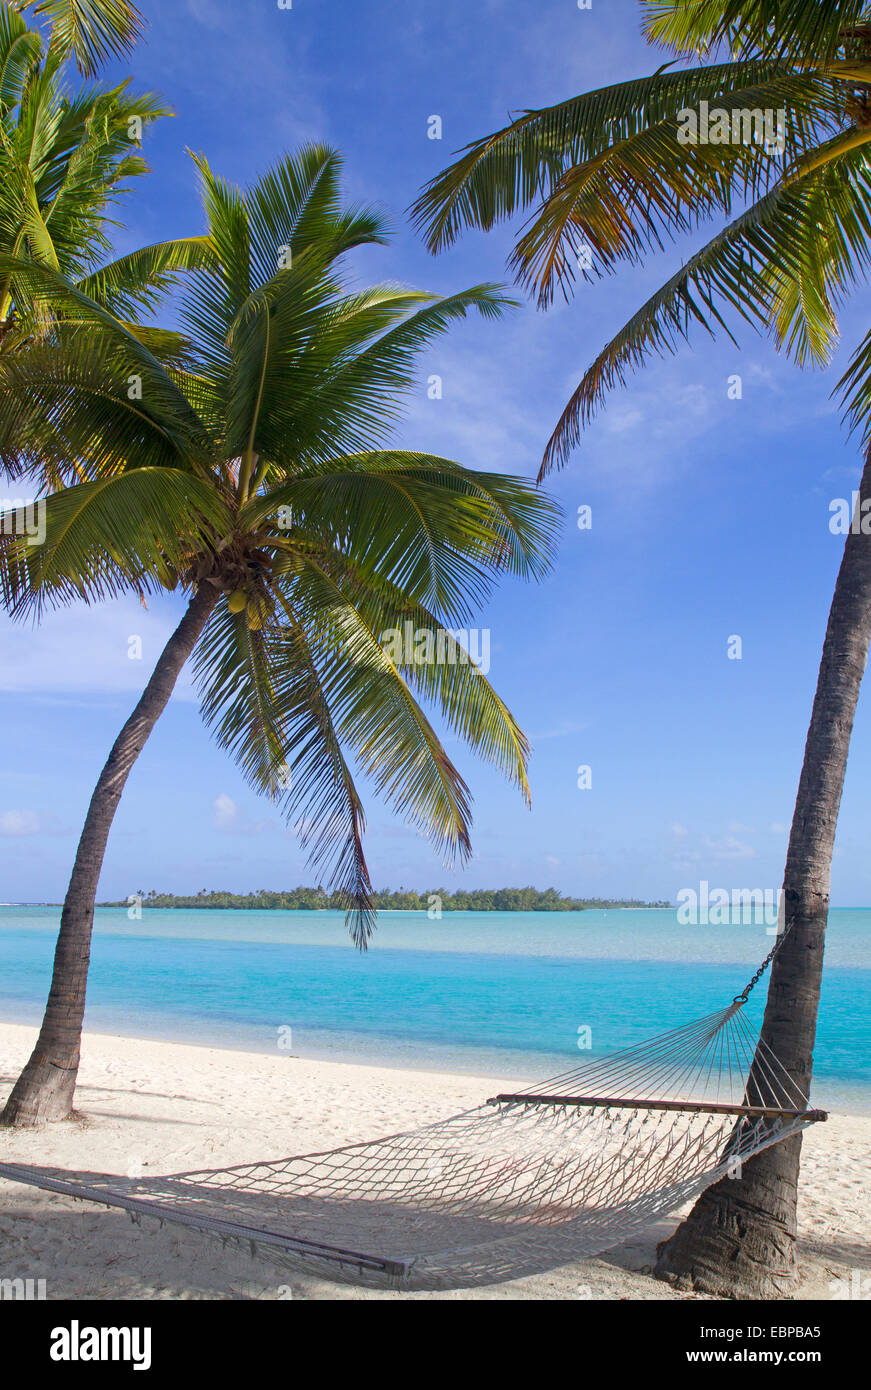 Hammock on an Aitutaki beach - Stock Image